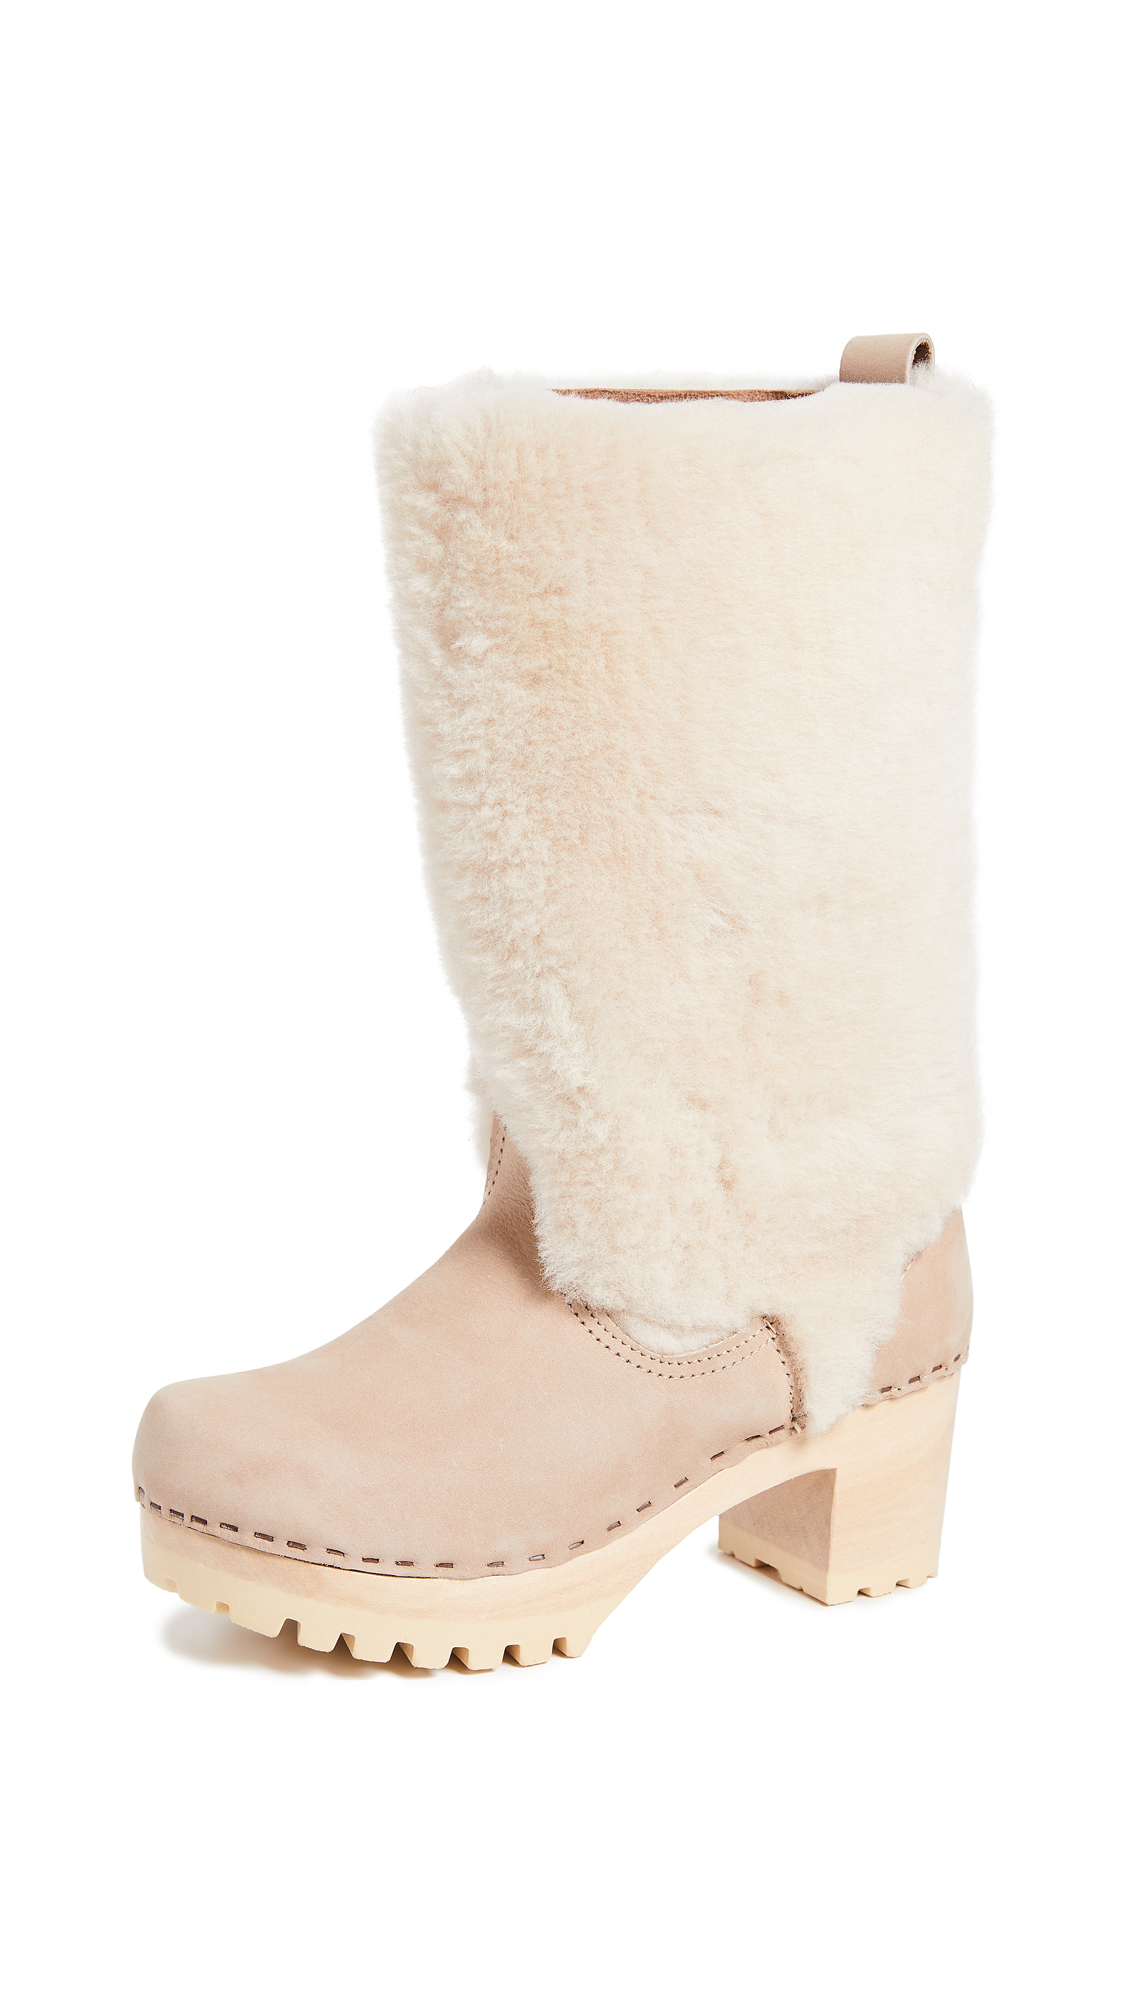 NO. 6 Alpha Shearling Boots in Bone/Cream